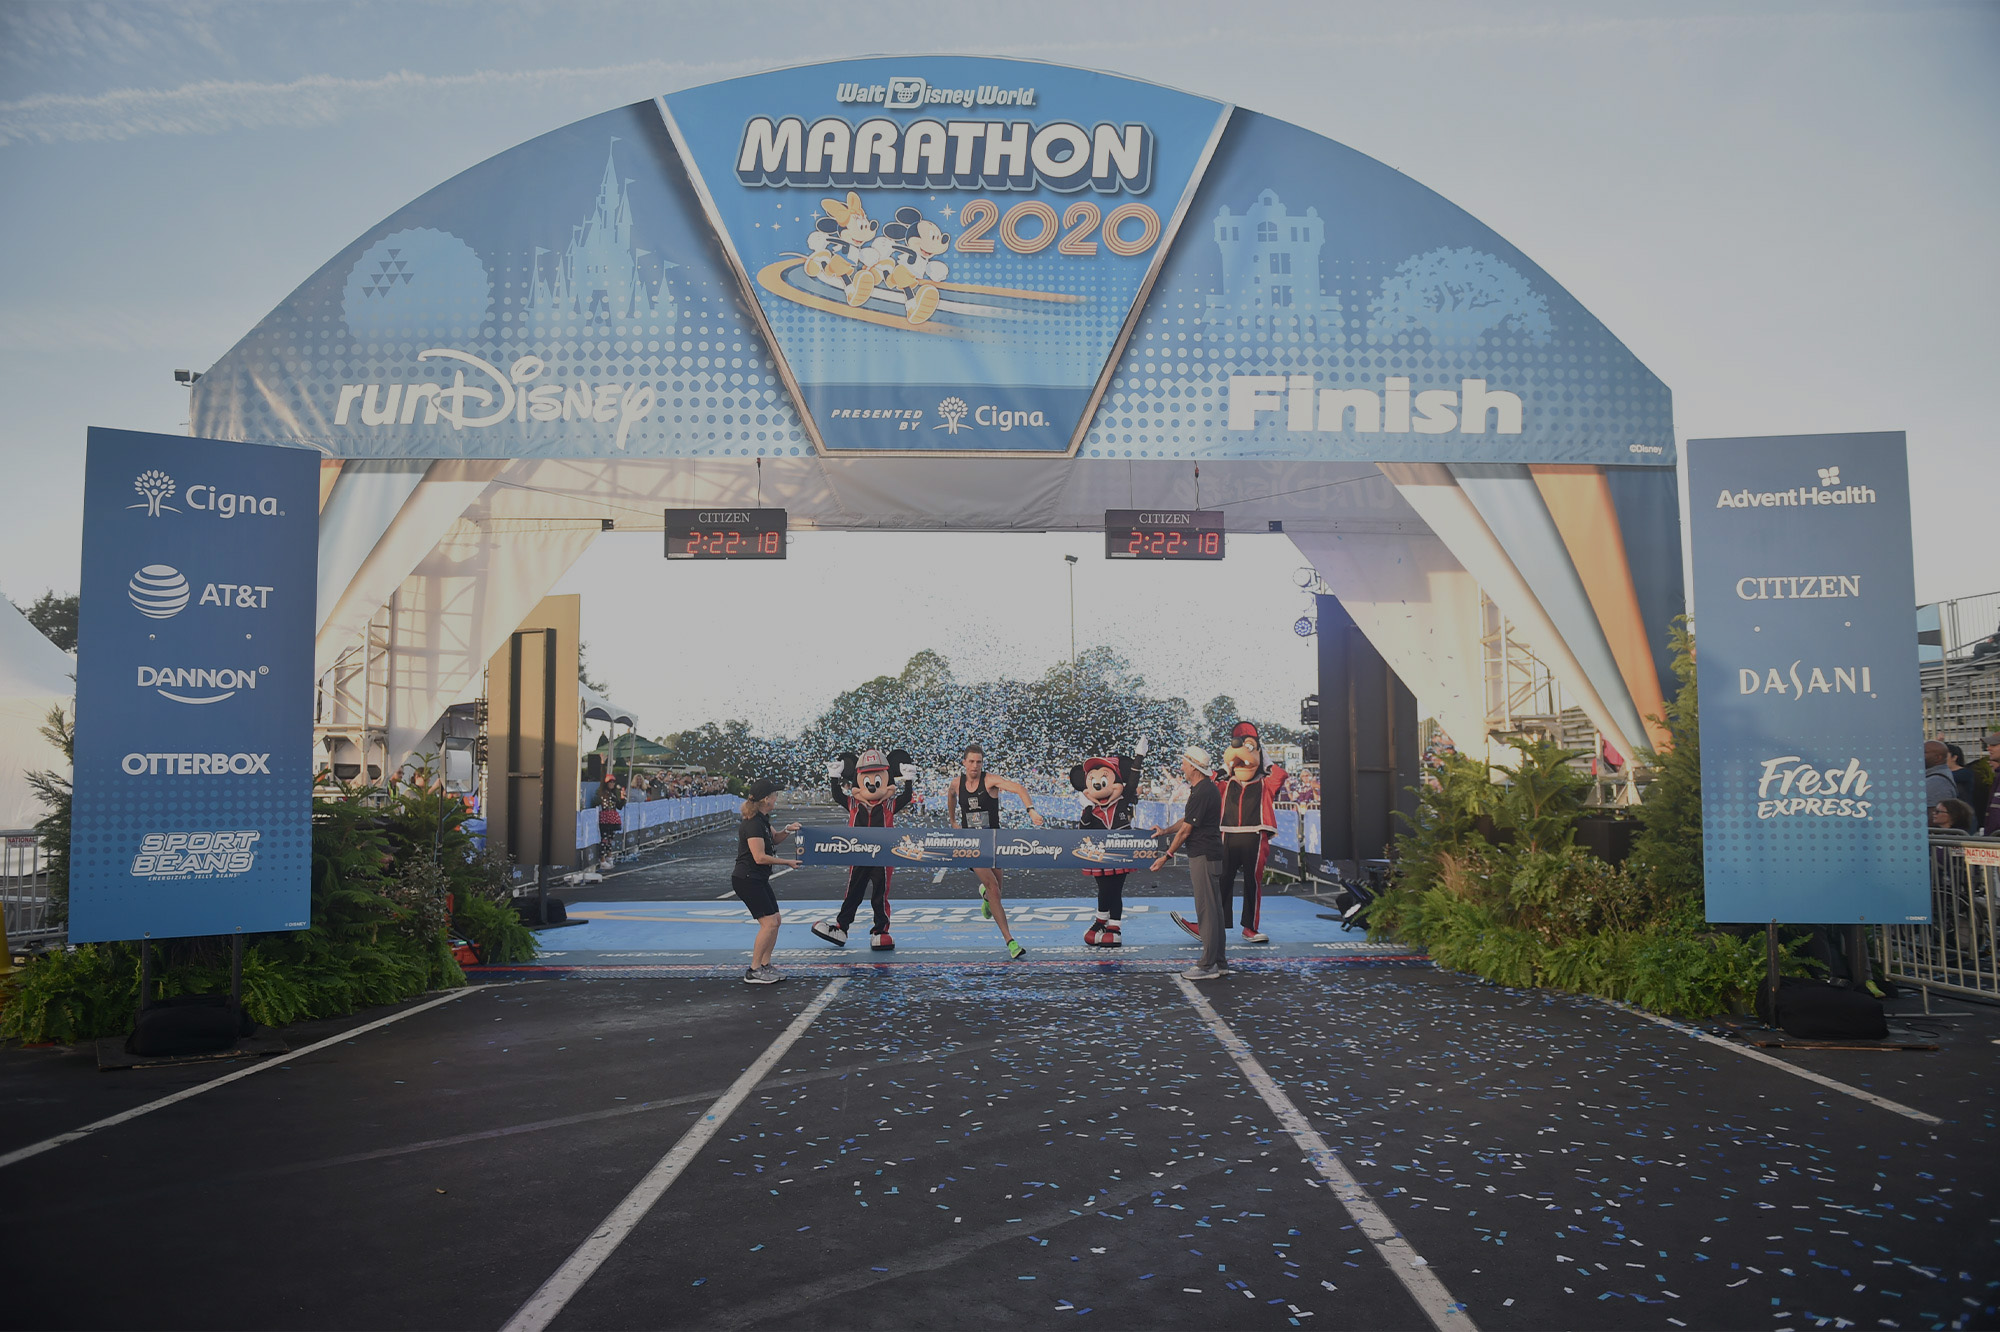 Runner crossing runDisney marathon finish line.